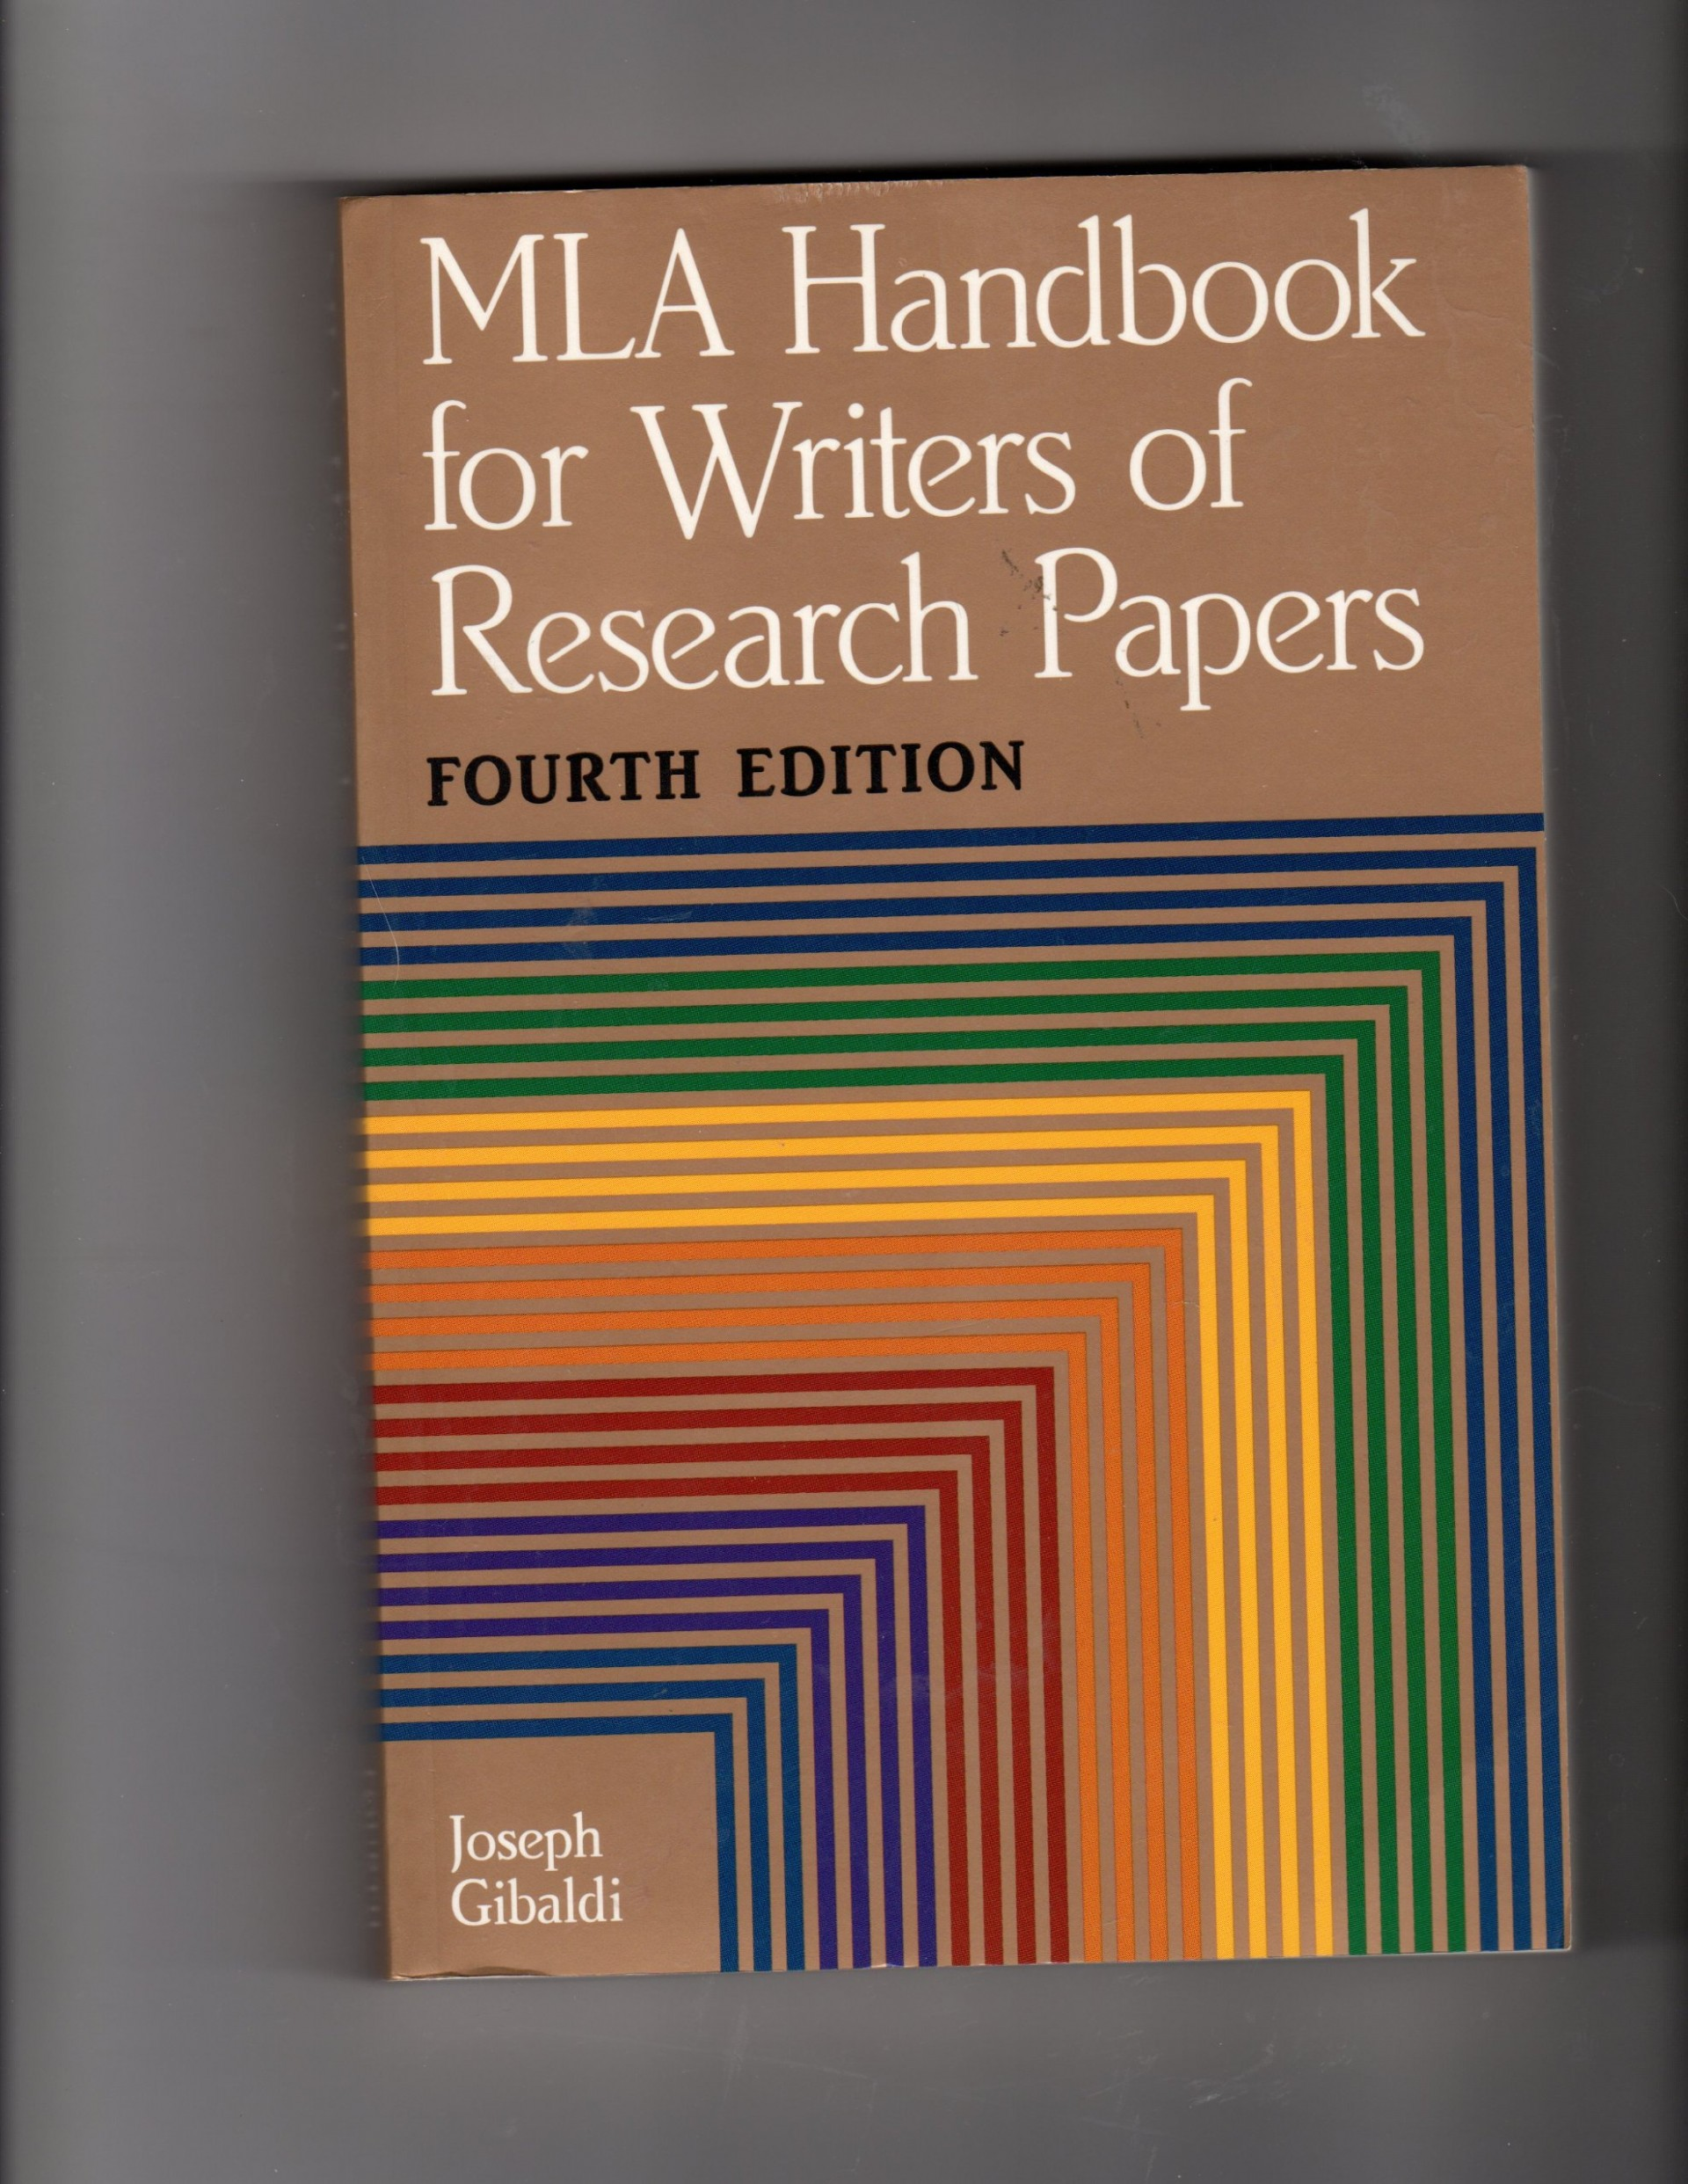 002 91or7esc2gl Research Paper Mla Handbook For Writers Of Papers 8th Unique Edition Pdf Free Download 1920